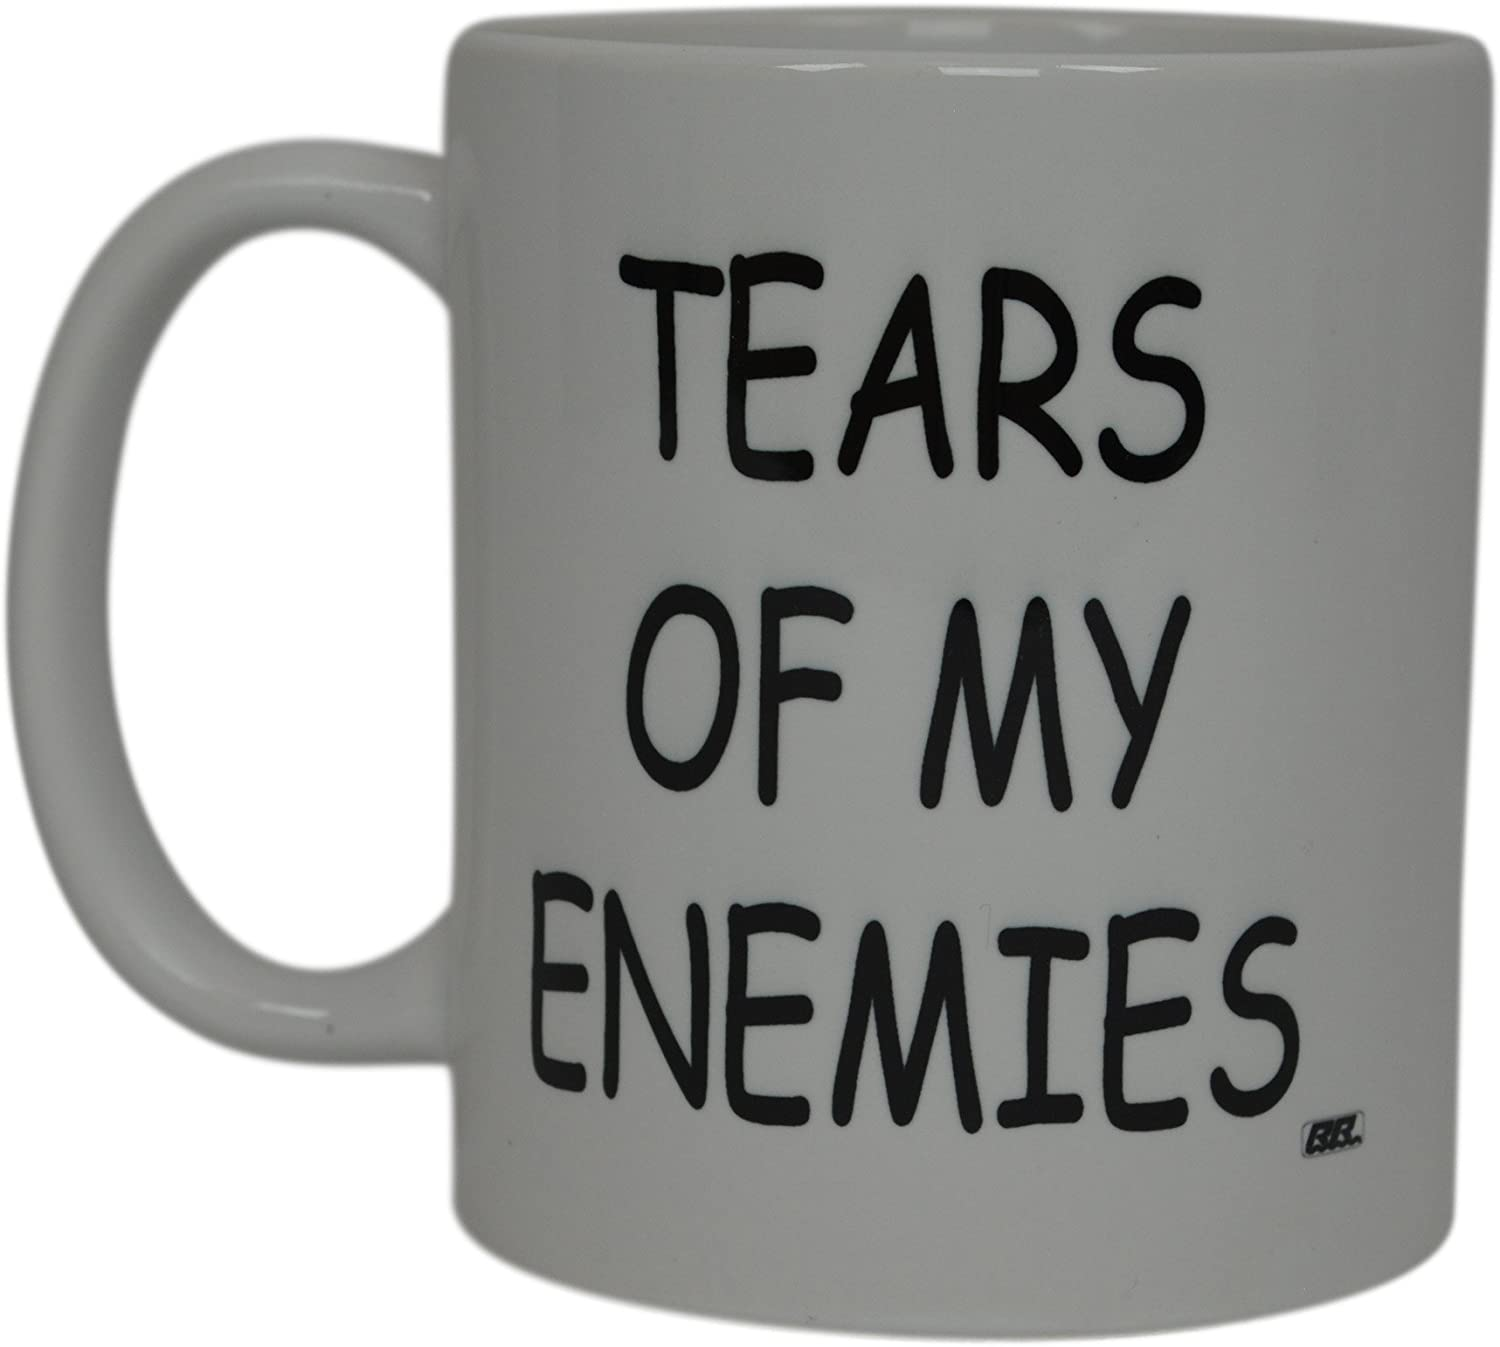 Best Funny Coffee Mug Tears Of My Enemies Novelty Cup Joke Great Gag Gift Idea For Men Women Office Work Adult Humor Employee Boss Coworkers (Tears of My Enemies)